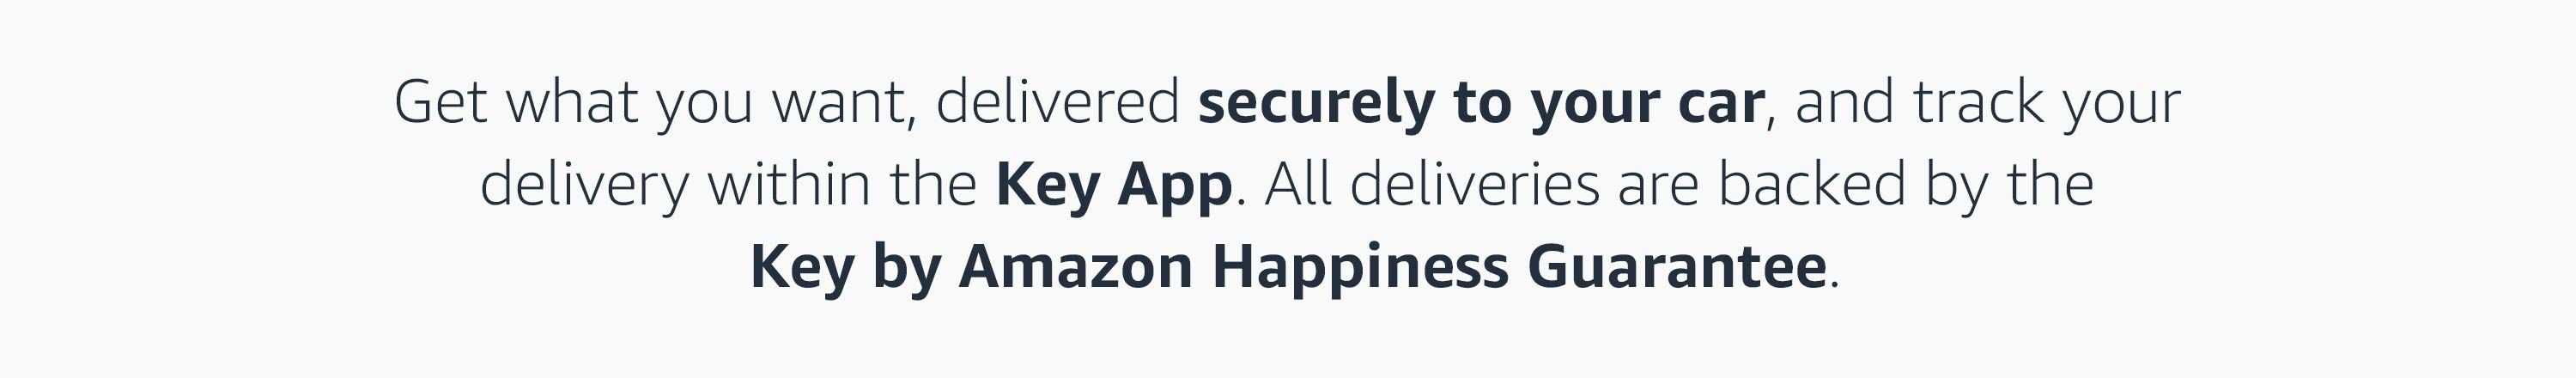 Track your delivery in the Key App. All deliveries are backed by the Key by Amazon Happiness Guarantee